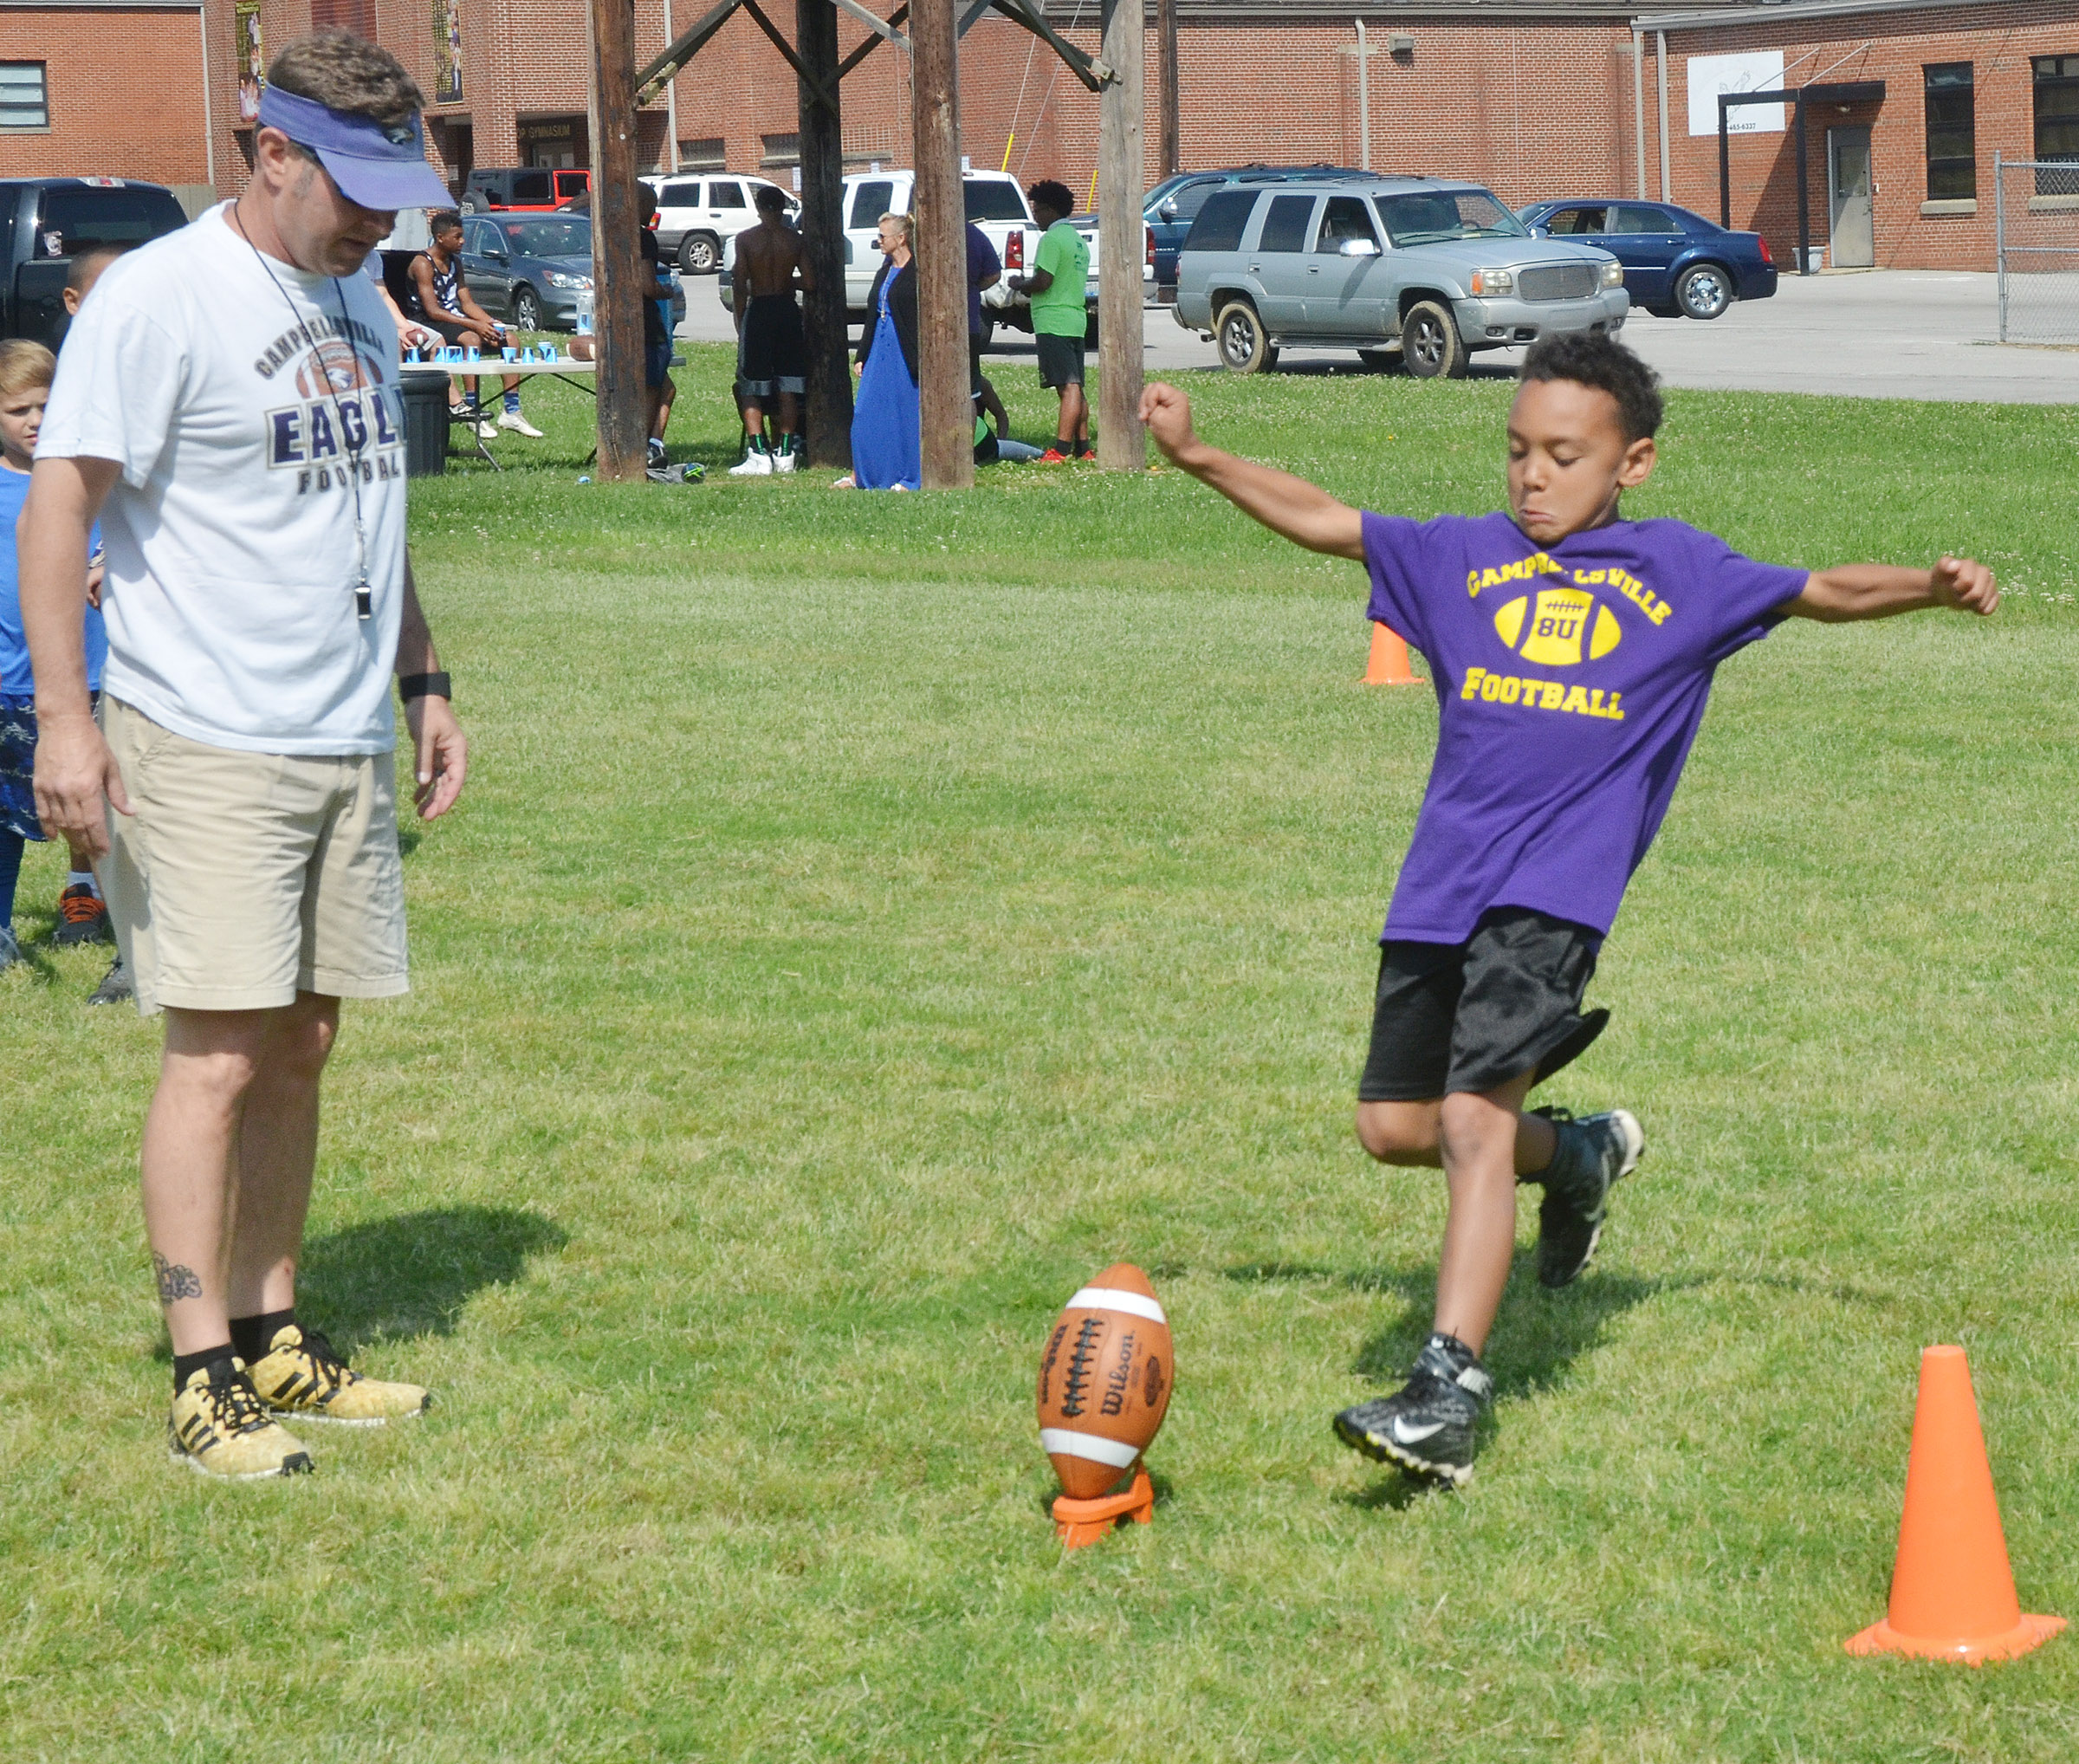 Maddox Hawkins kicks the ball, with help from assistant coach Herb Wiseman.